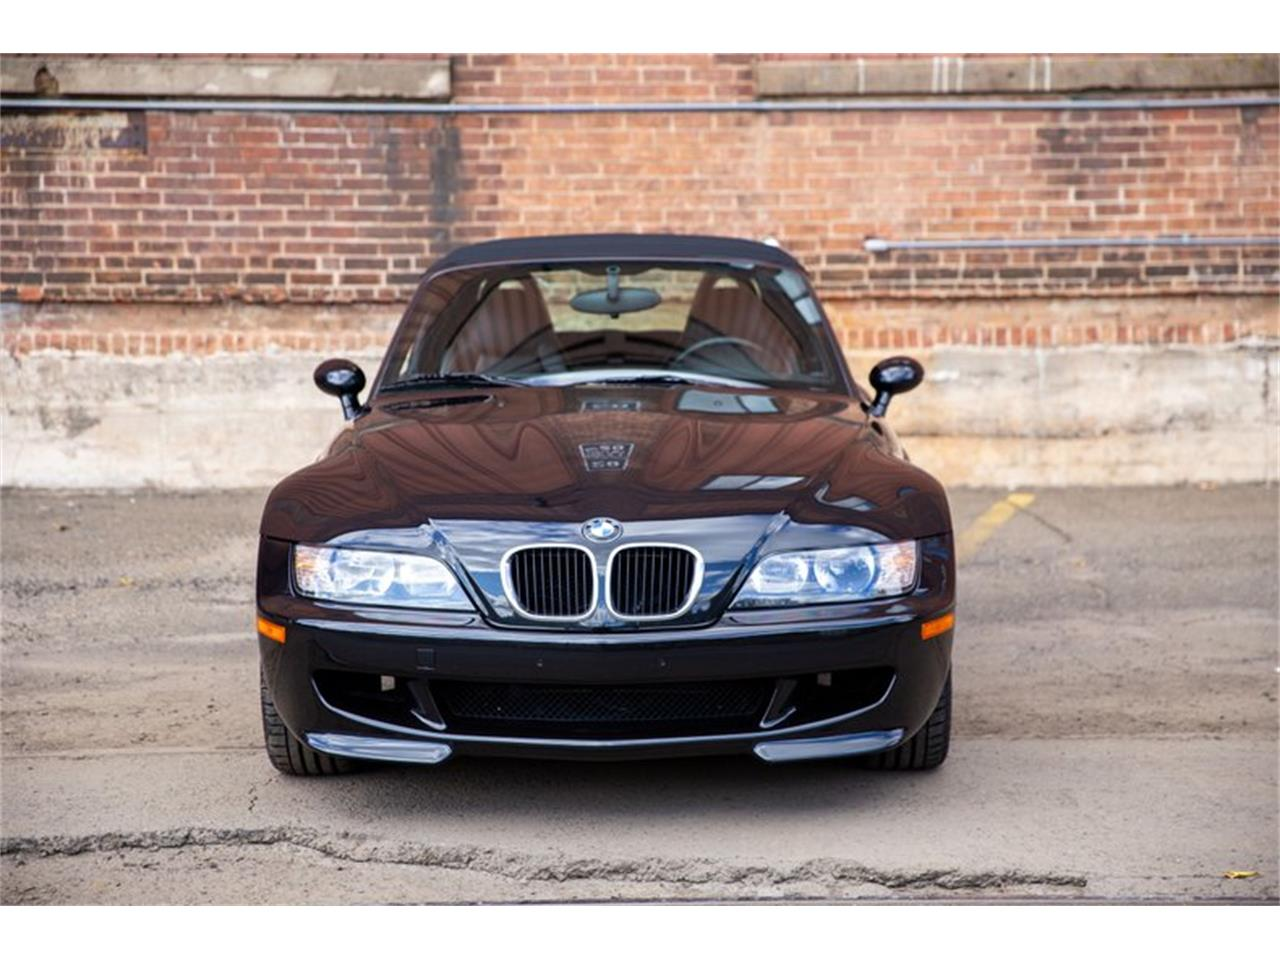 1999 BMW Z3 (CC-1265358) for sale in Wallingford, Connecticut